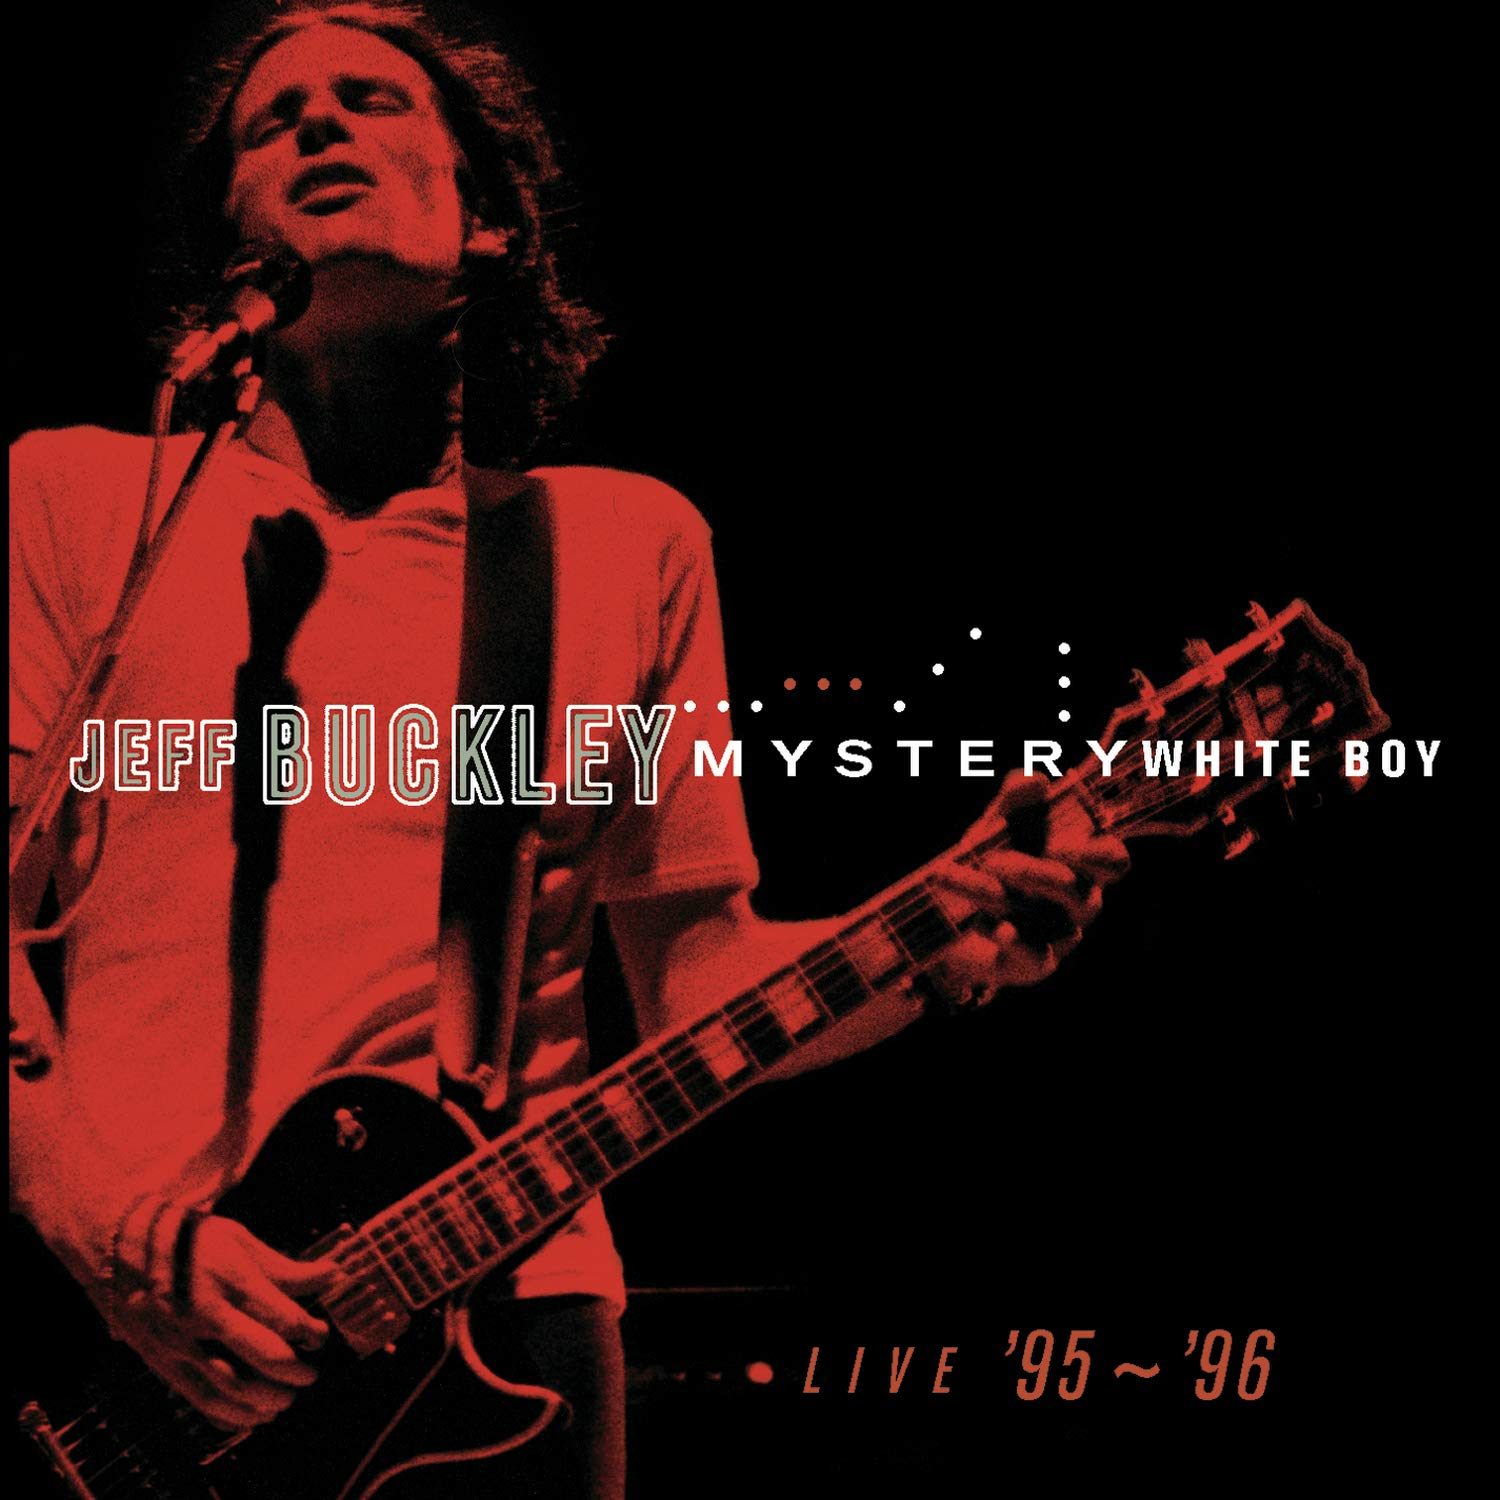 Jeff Buckley, Mystery White Boy